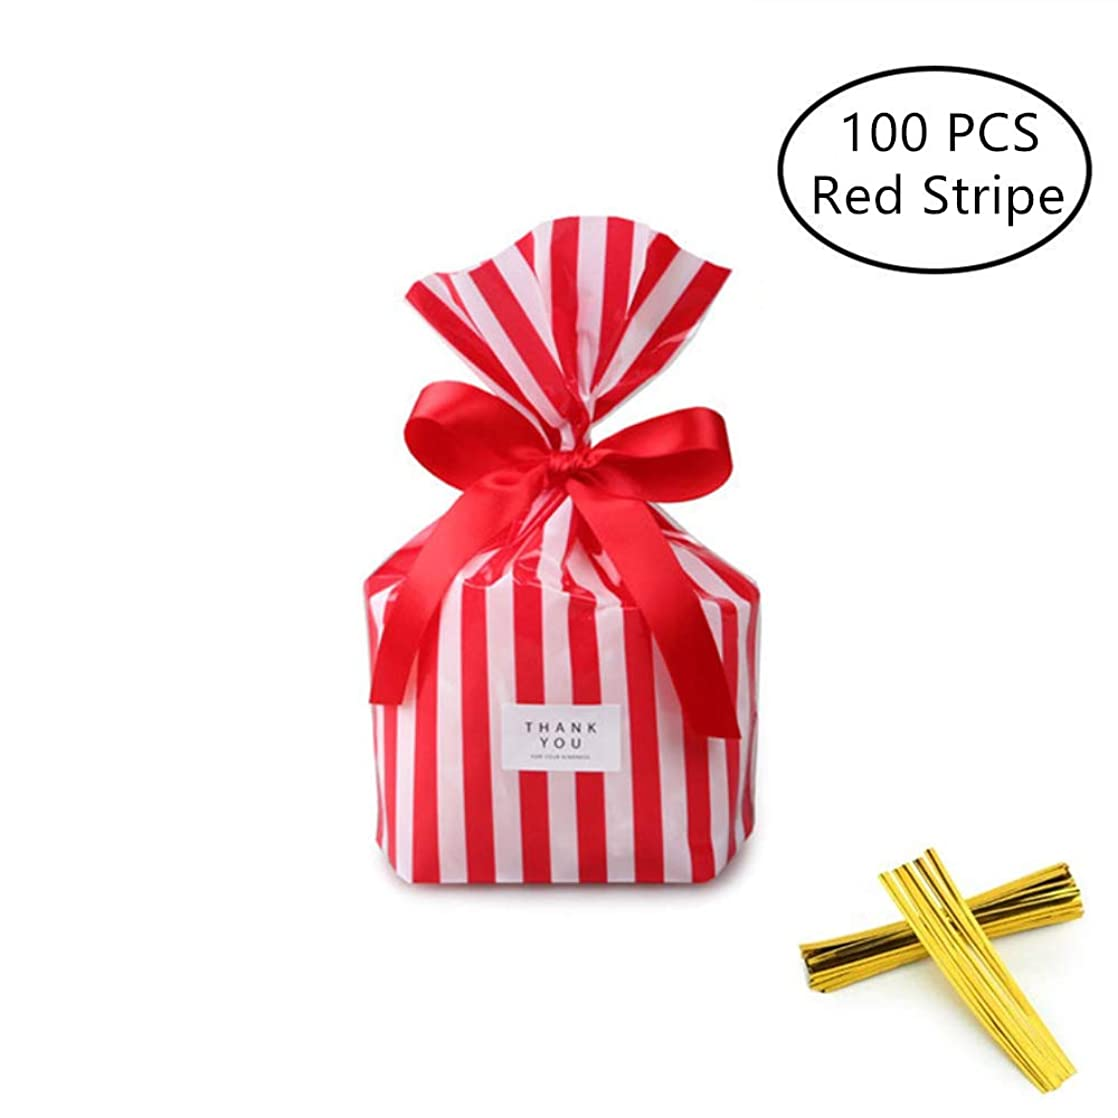 Red and White Stripe Clear Cello Bags Cookie Candy Plastic Bags Cellophane Treat Bags, Party Favor Bags, Great for Wedding, Birthday, Bridal/Baby Shower, or Any Parties and Events, Pack of 100 llexcbha60129